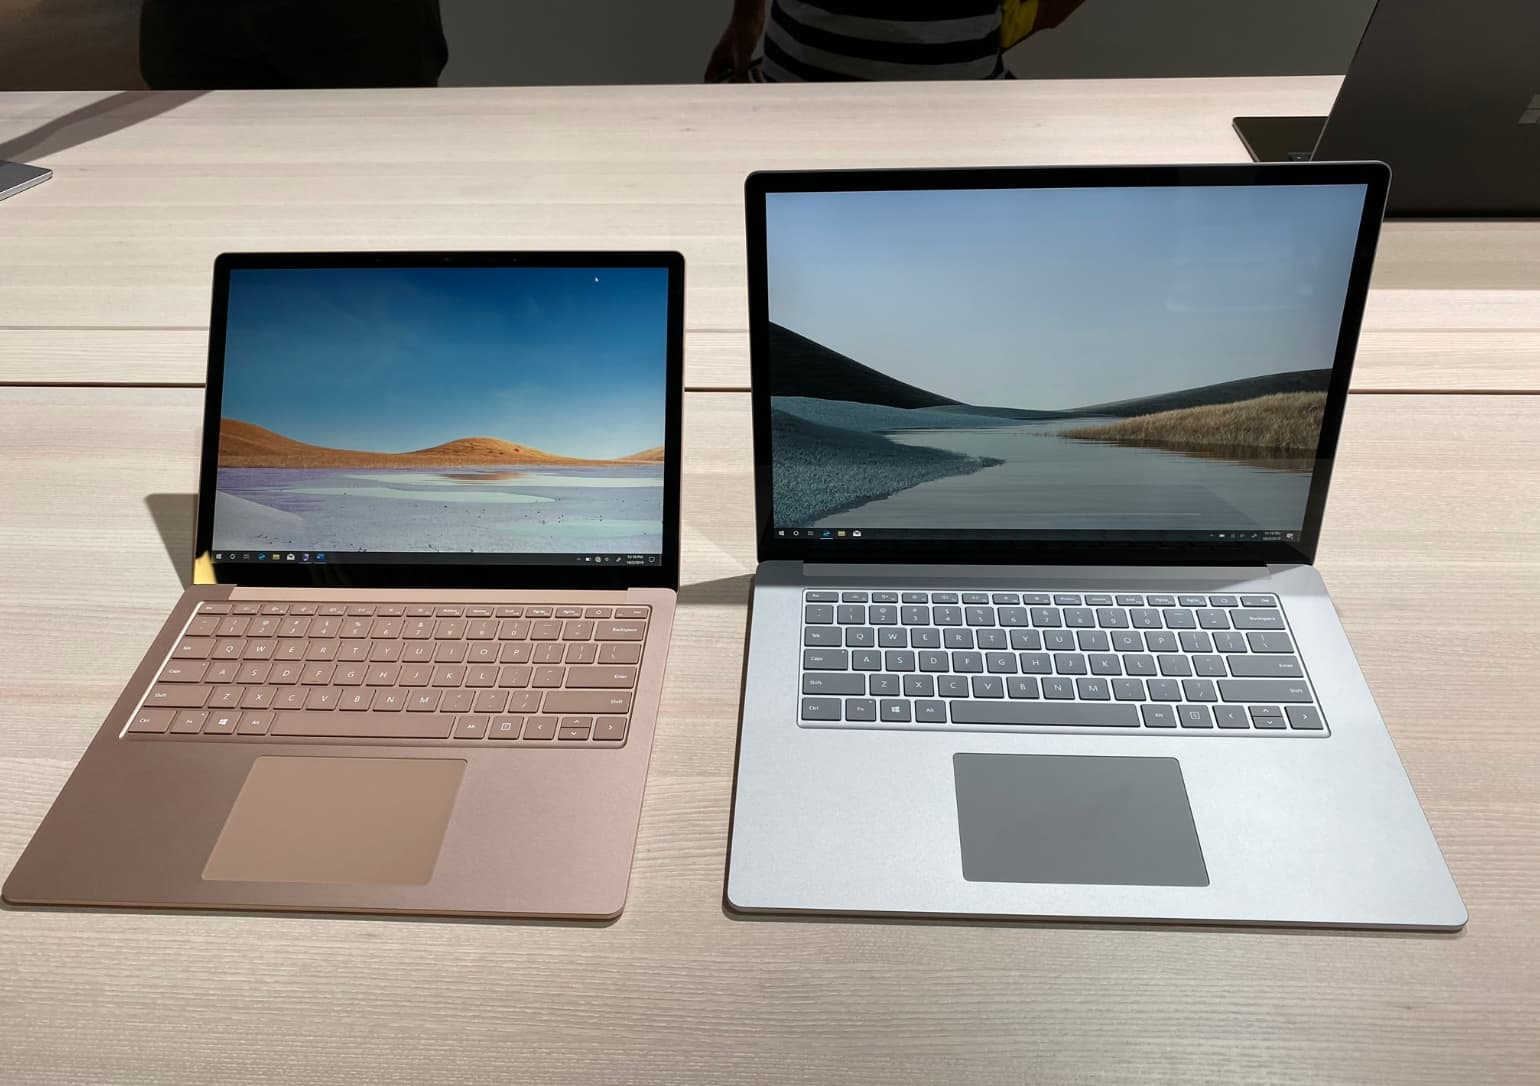 Here's a first look at Microsoft's folding phone and dual-screen laptop — plus the new Surfaces